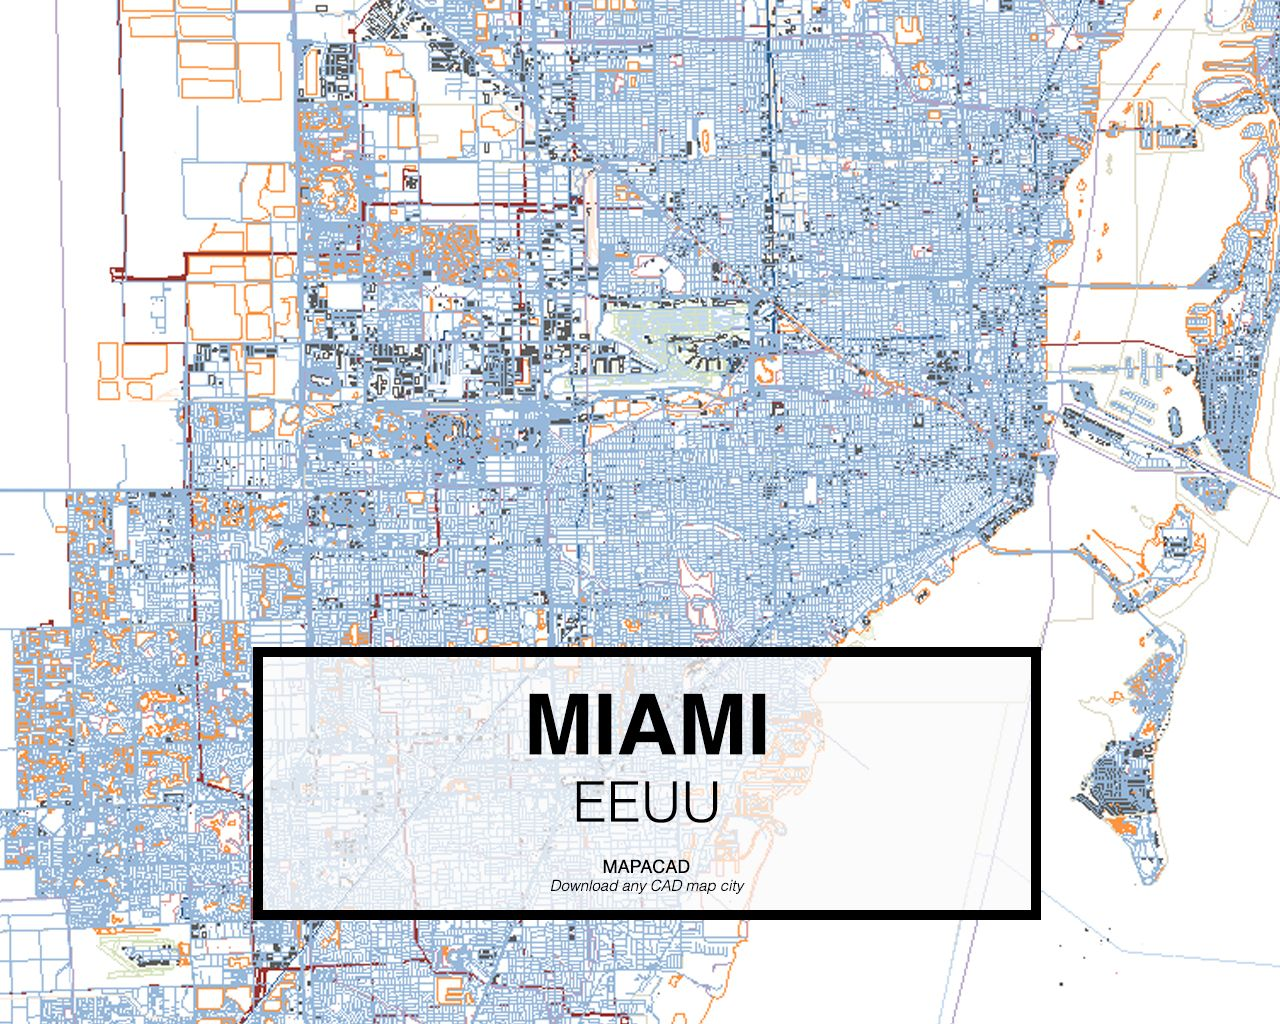 Miami eeuu download cad map city in dwg ready to use in autocad download cad map city in dwg ready to use in autocad gumiabroncs Image collections